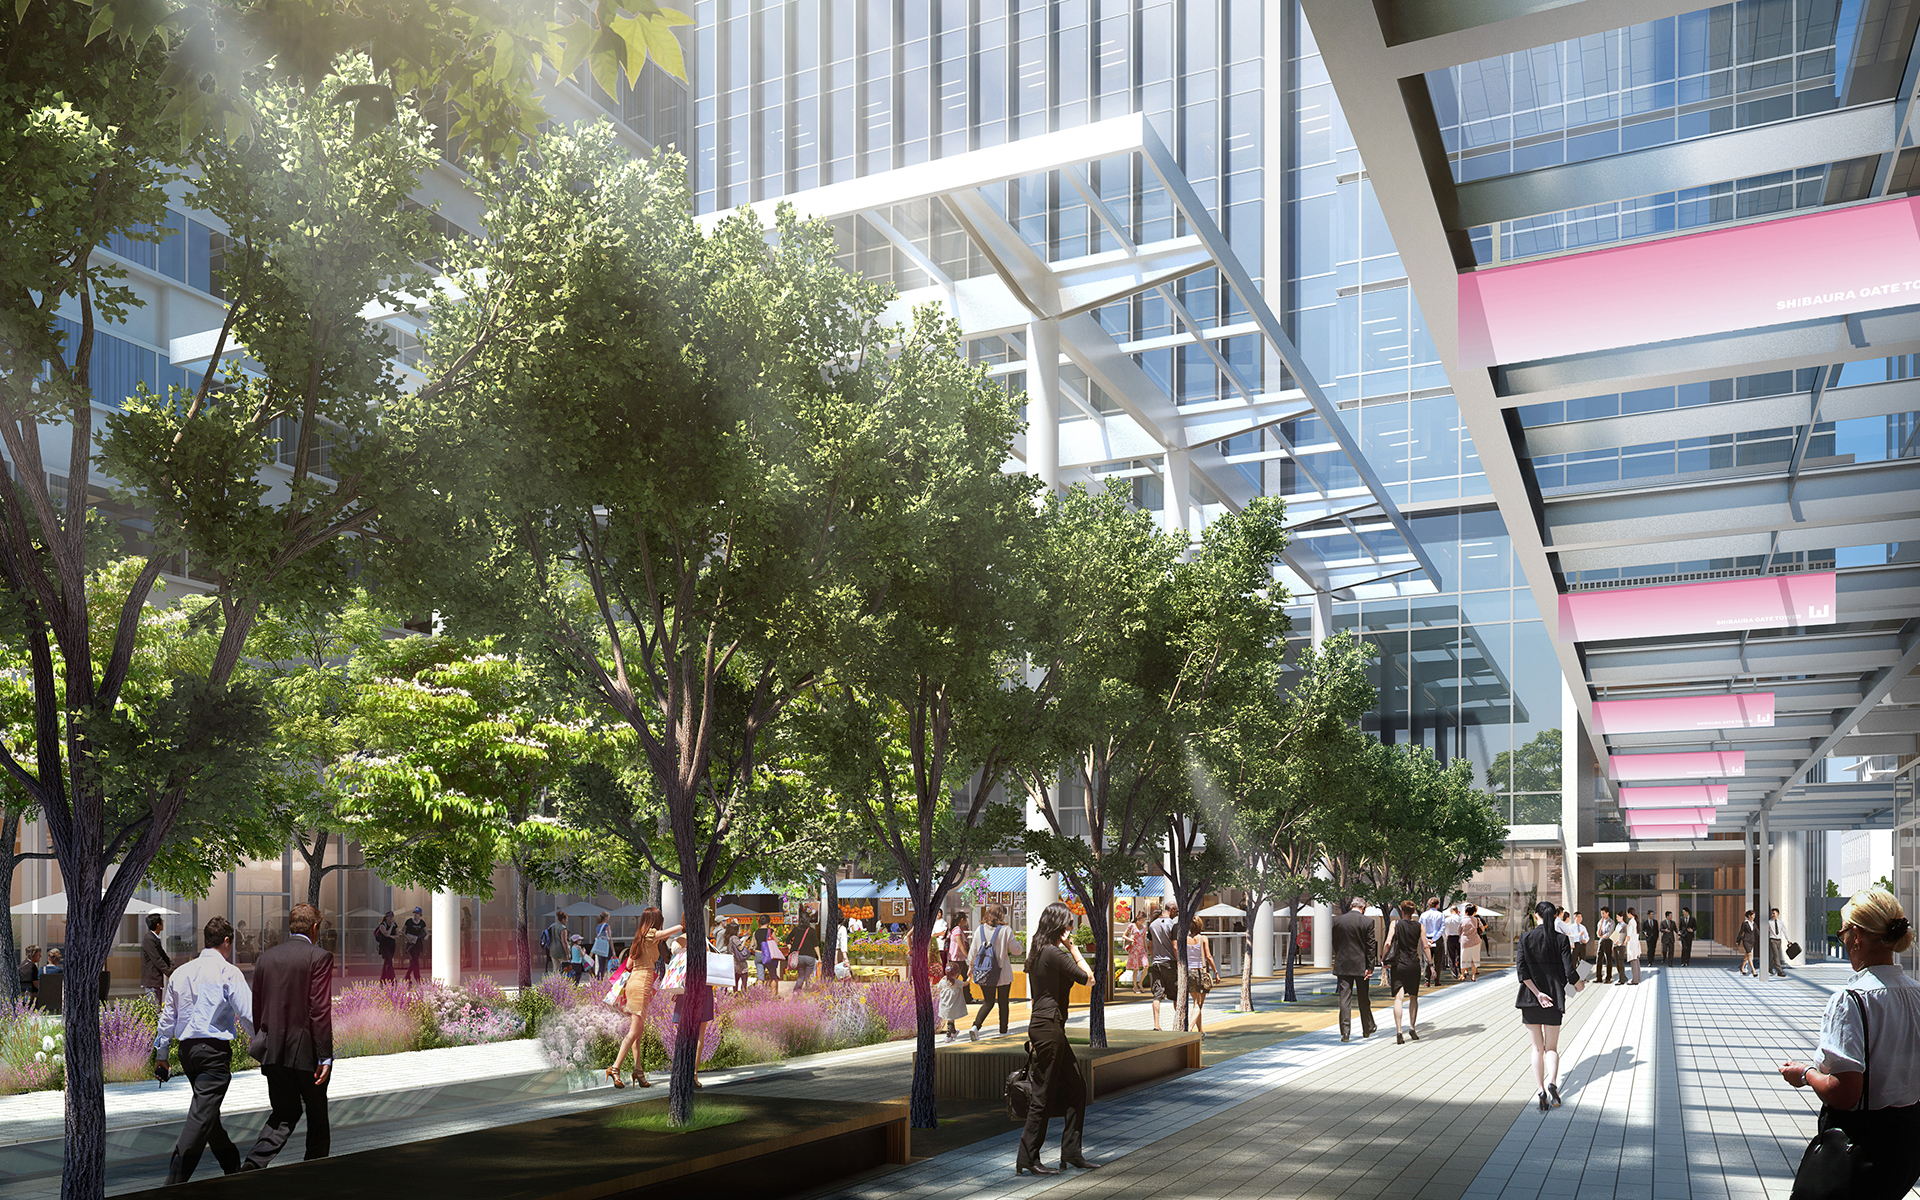 CG rendering of the front yard of the completed Office Towers